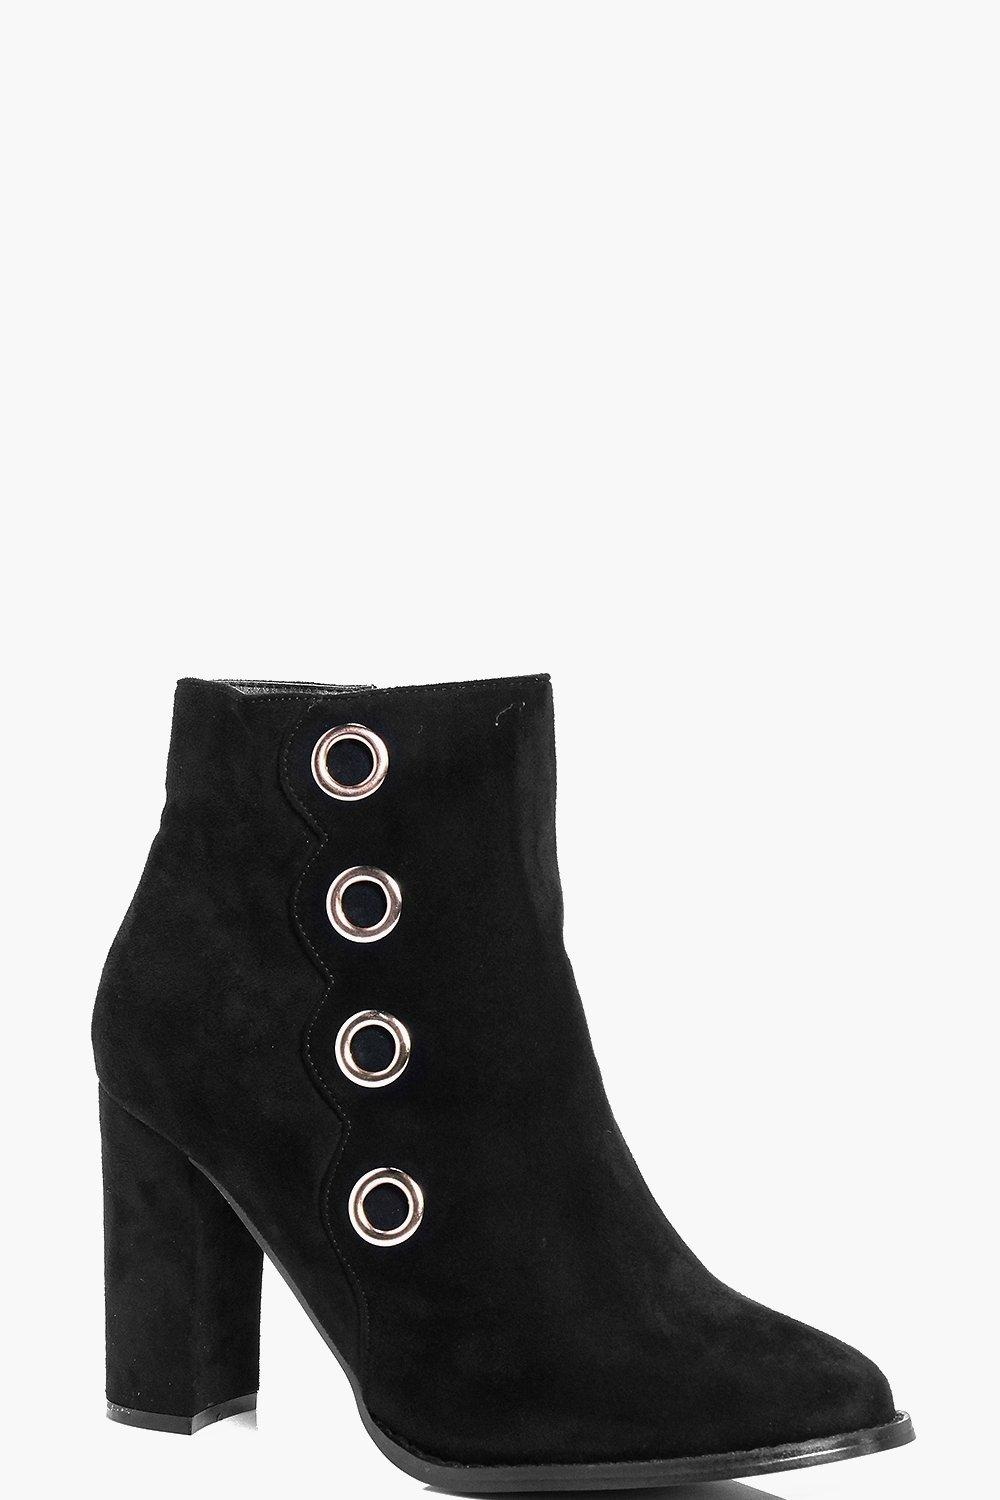 Elena Eyelet Detailed Heeled Ankle Boot